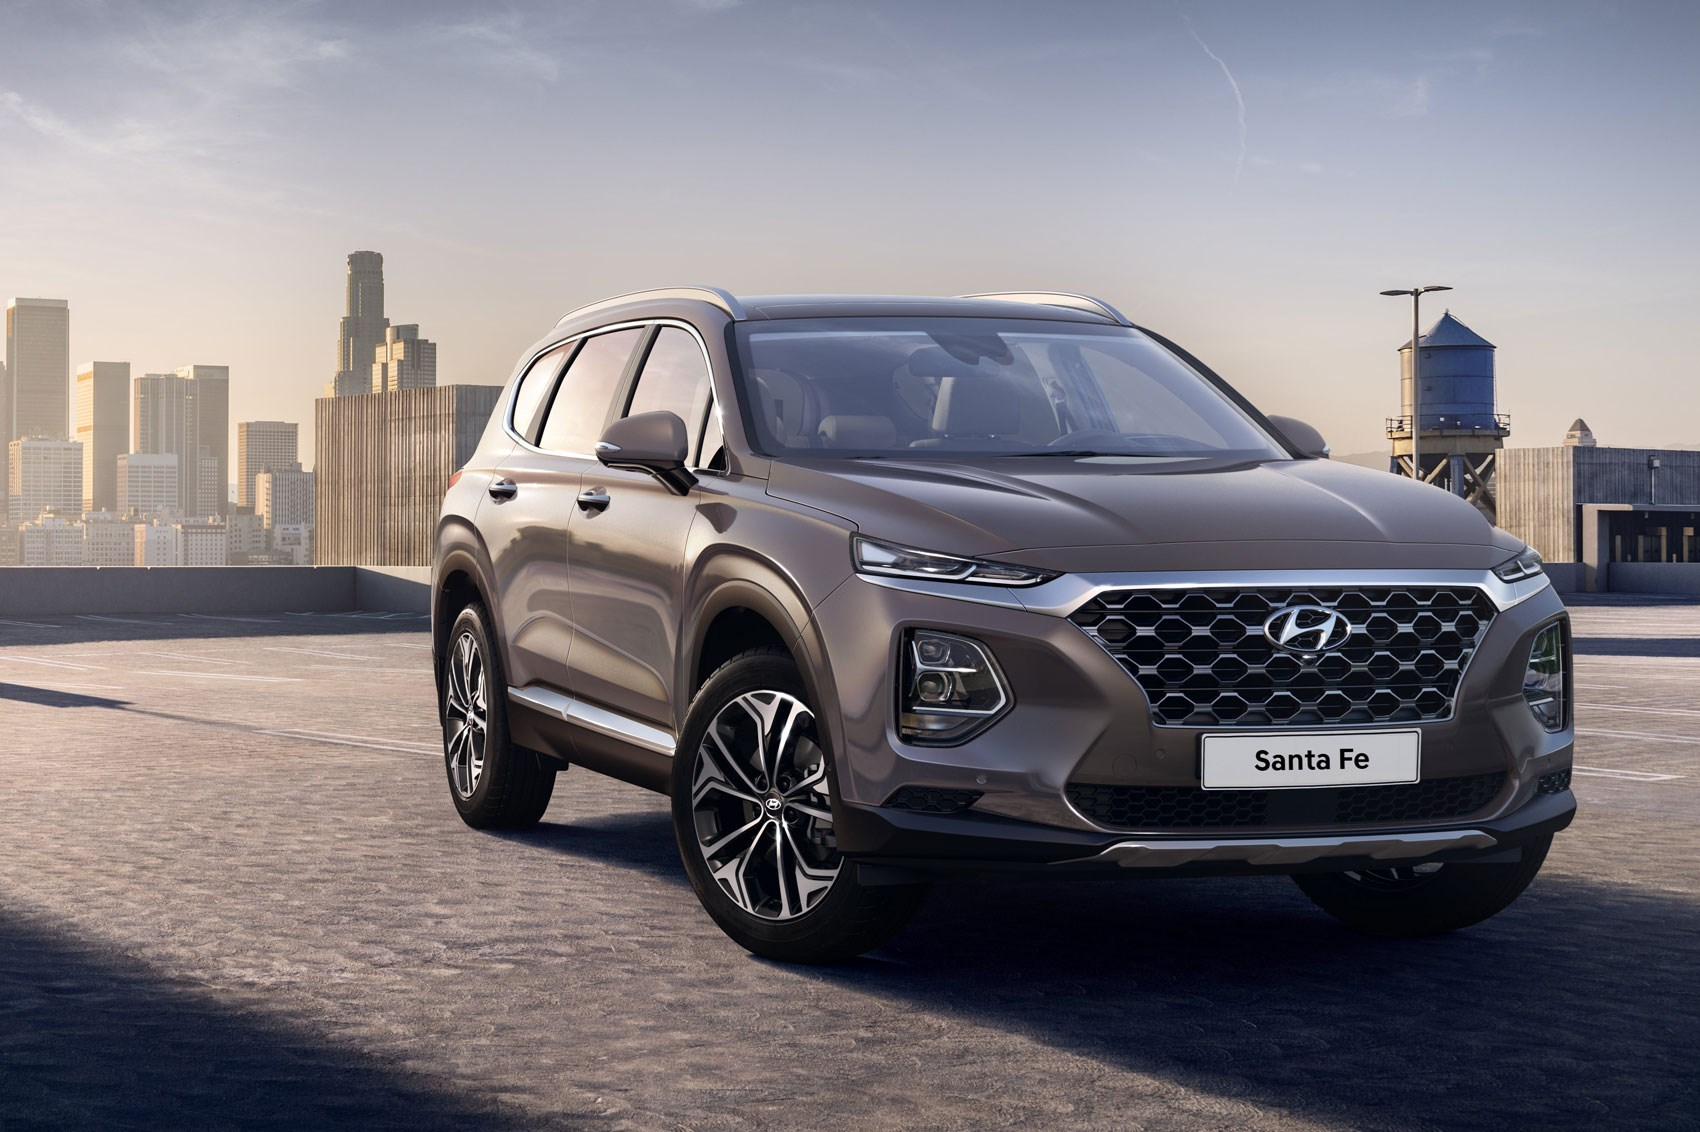 New Hyundai Santa Fe SUV everything we know so far by CAR Magazine